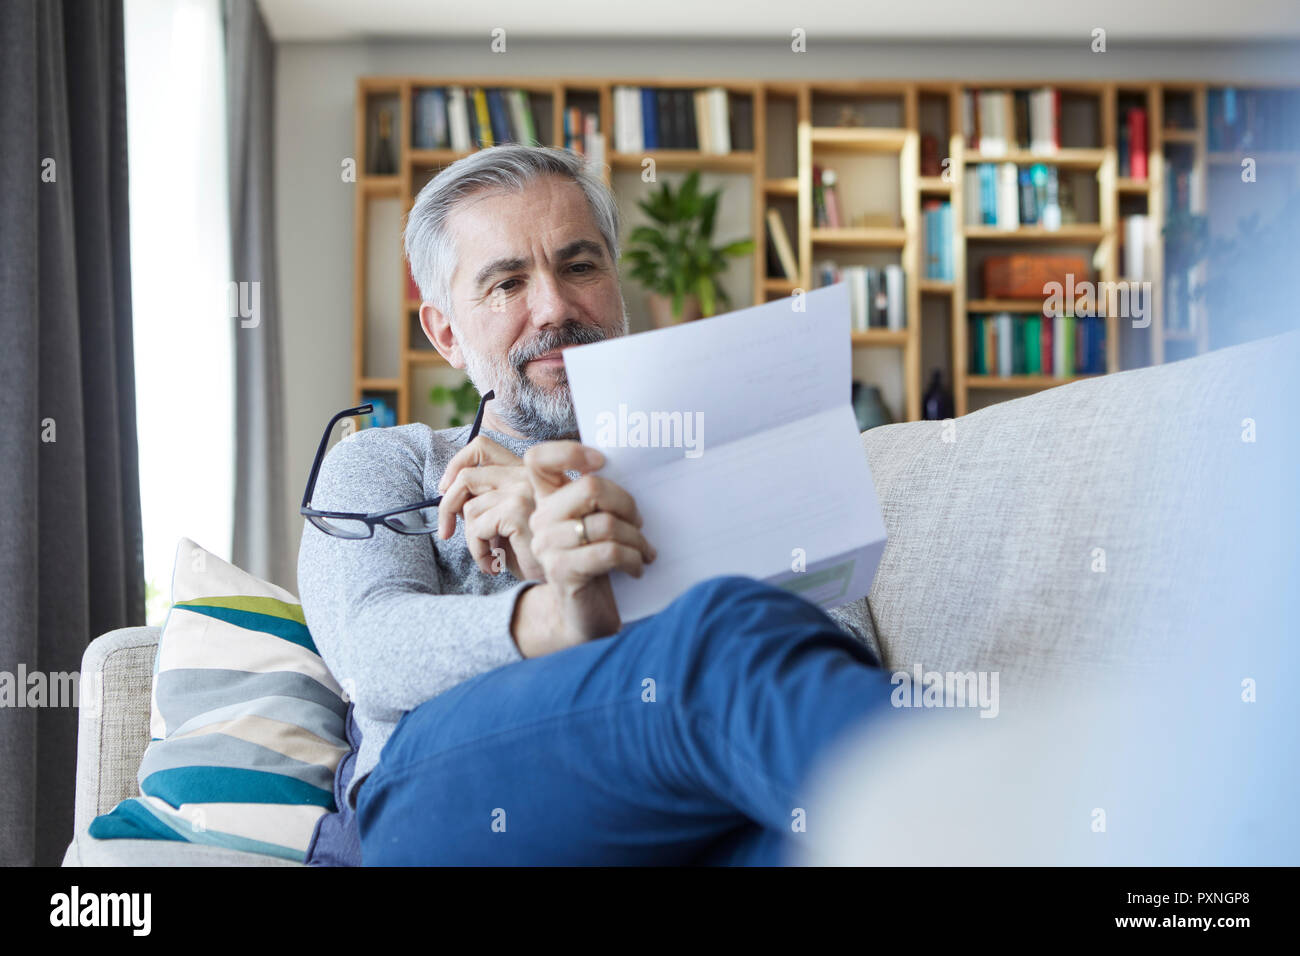 Mature man sitting on couch at home reading letter - Stock Image